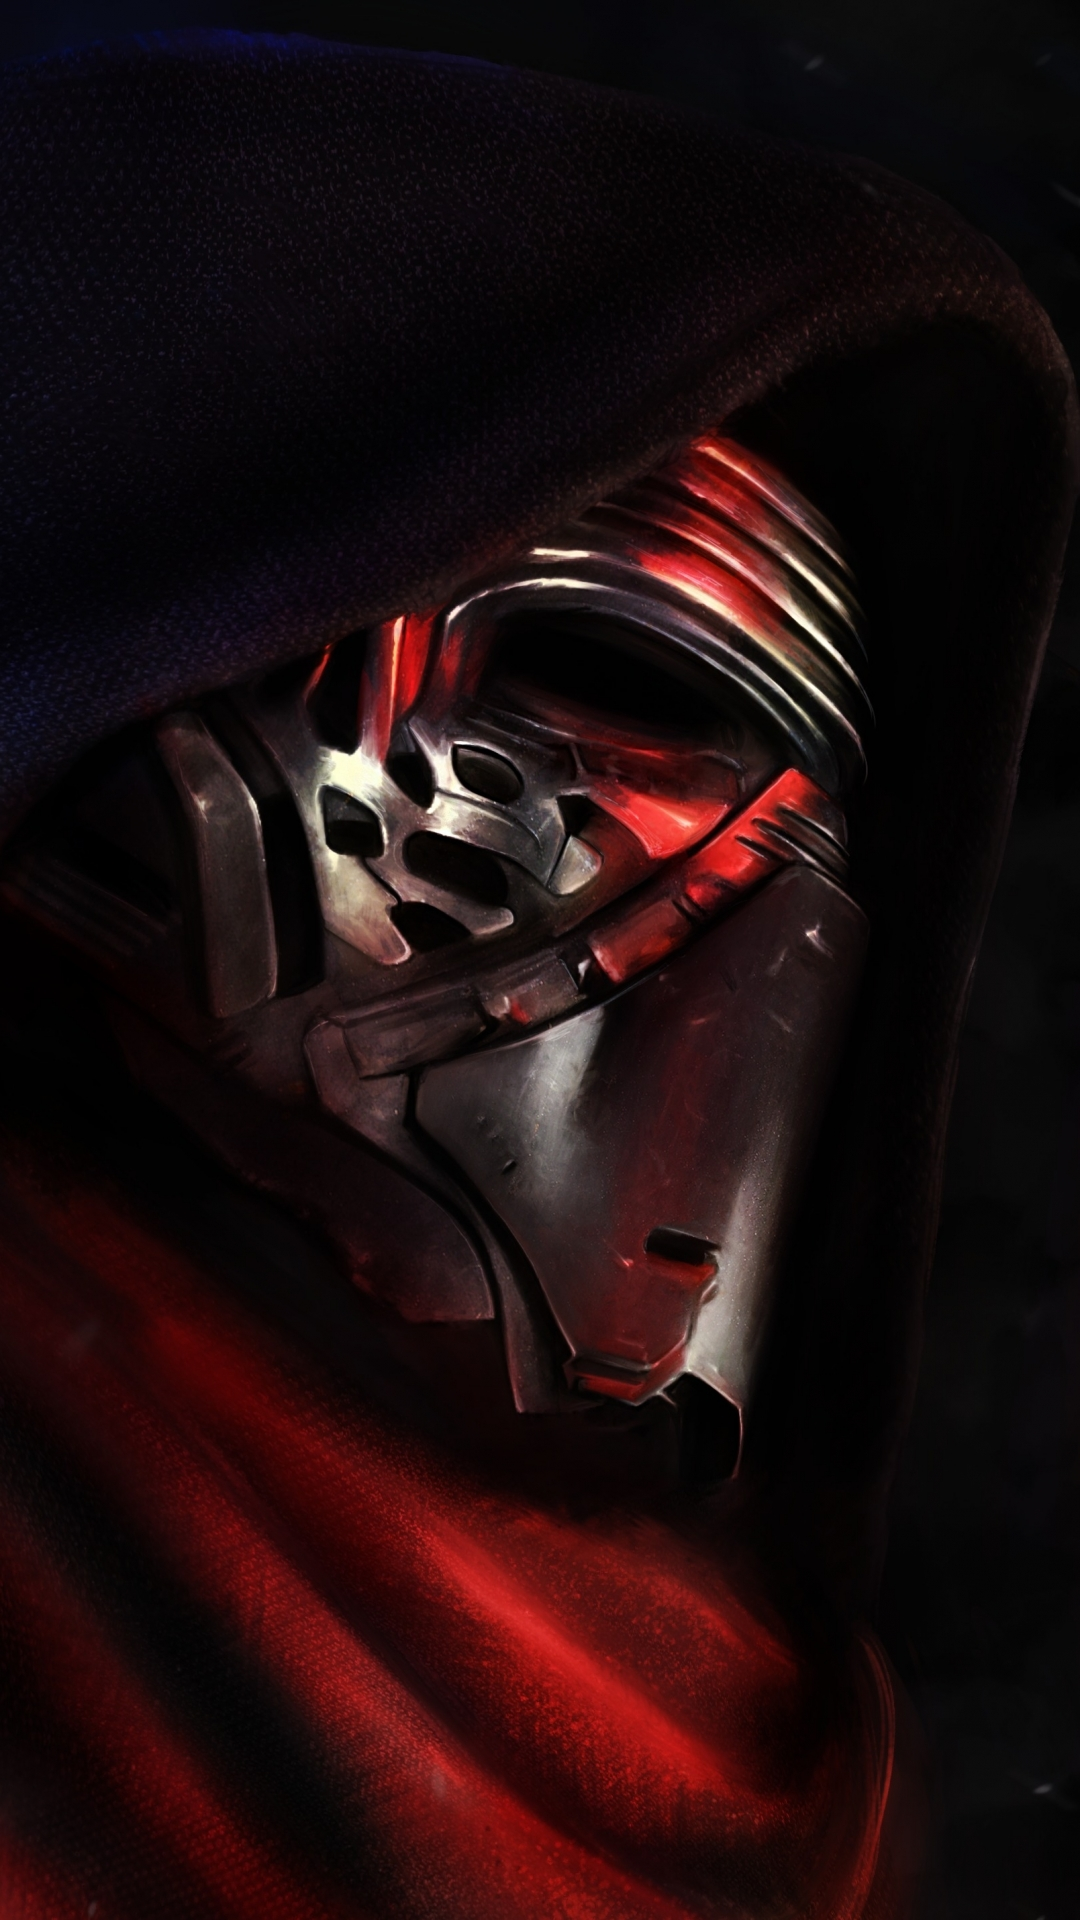 Star Wars The Force Awakens Wallpapers para iPhone 1080x1920